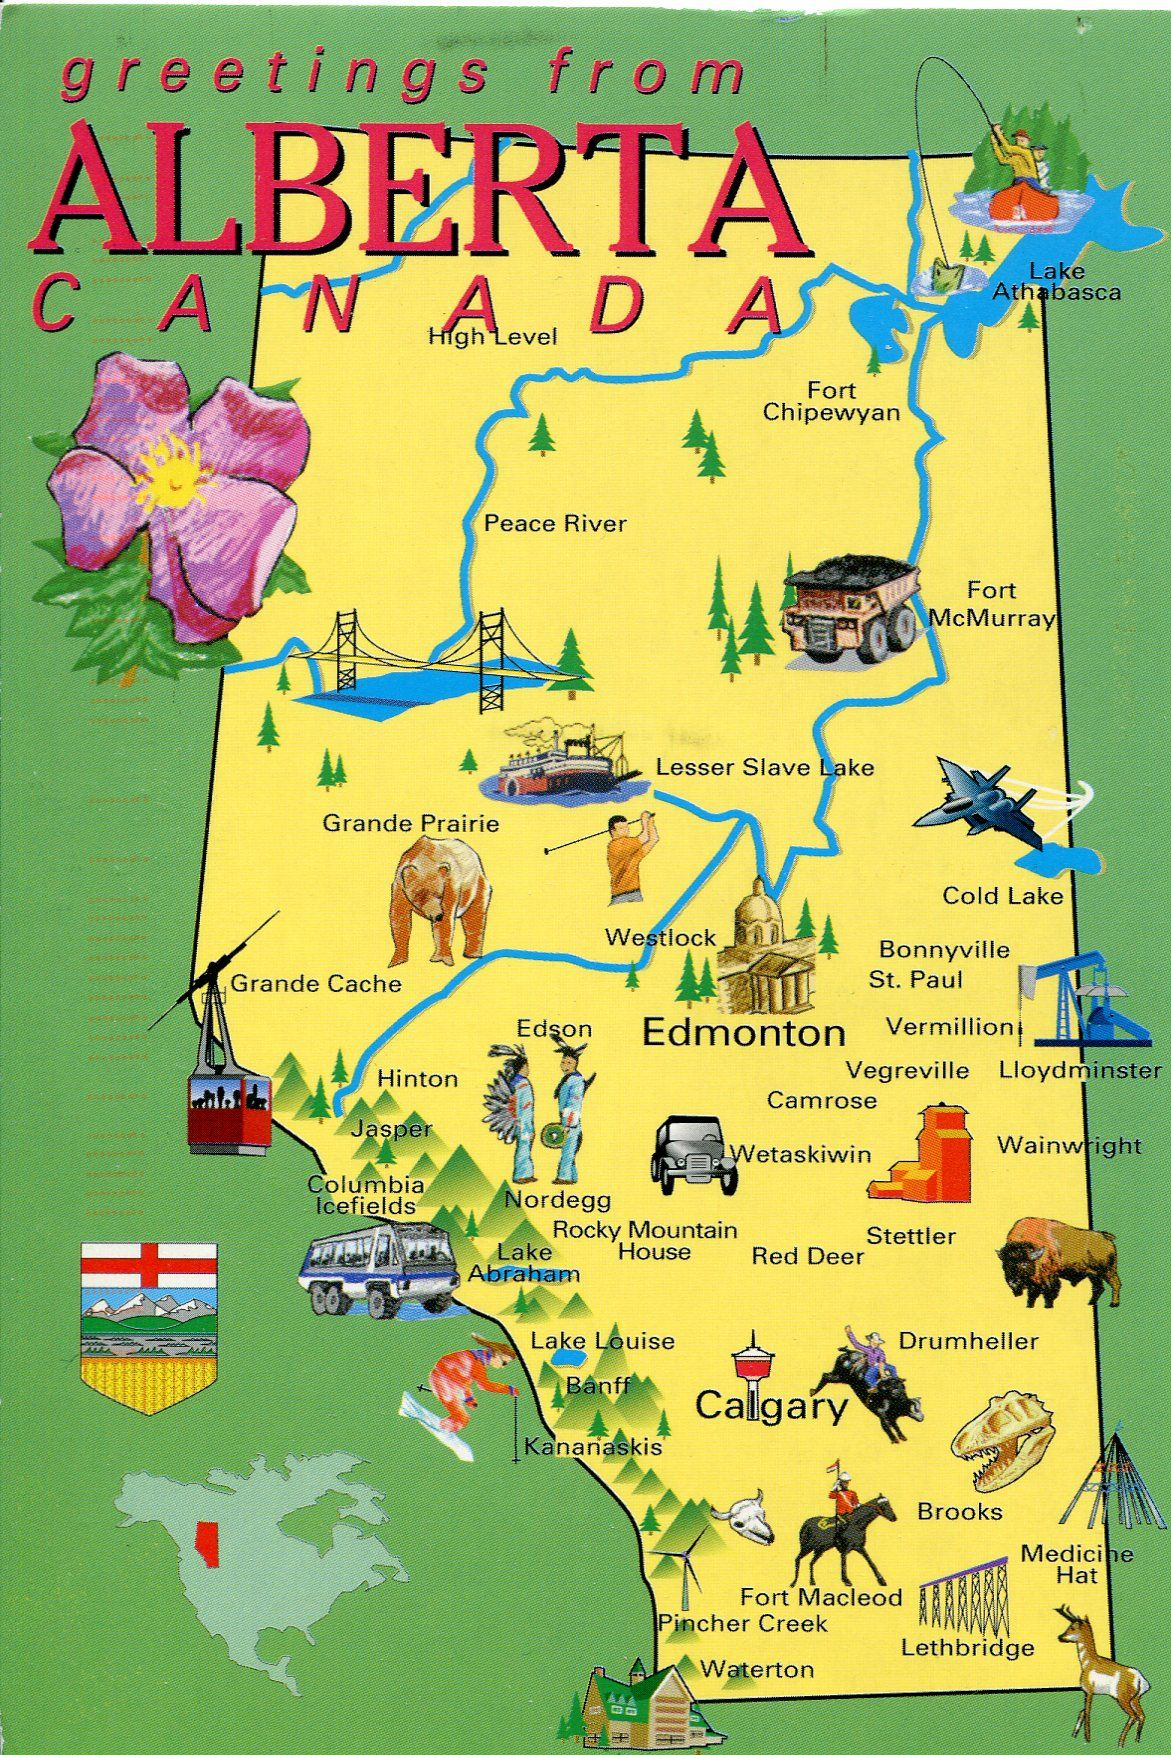 Alberta Canada Map Family Owns Land In This Sector Of Canada - Mountains in canada map